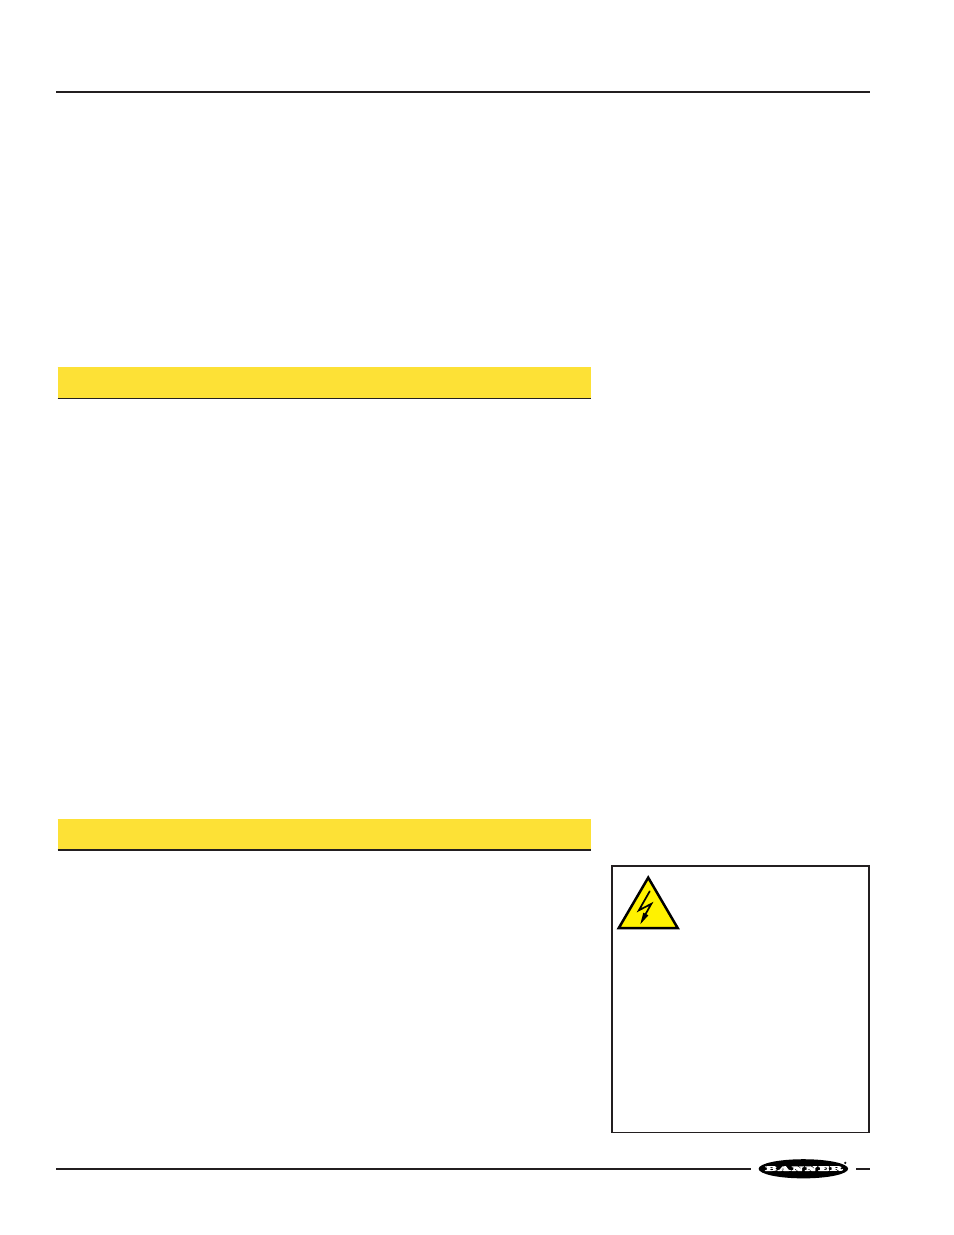 E Stop Safety Module Model Es Fa 6g Switch Requirements Emergency Button Wiring Diagram Banner User Manual Page 4 12